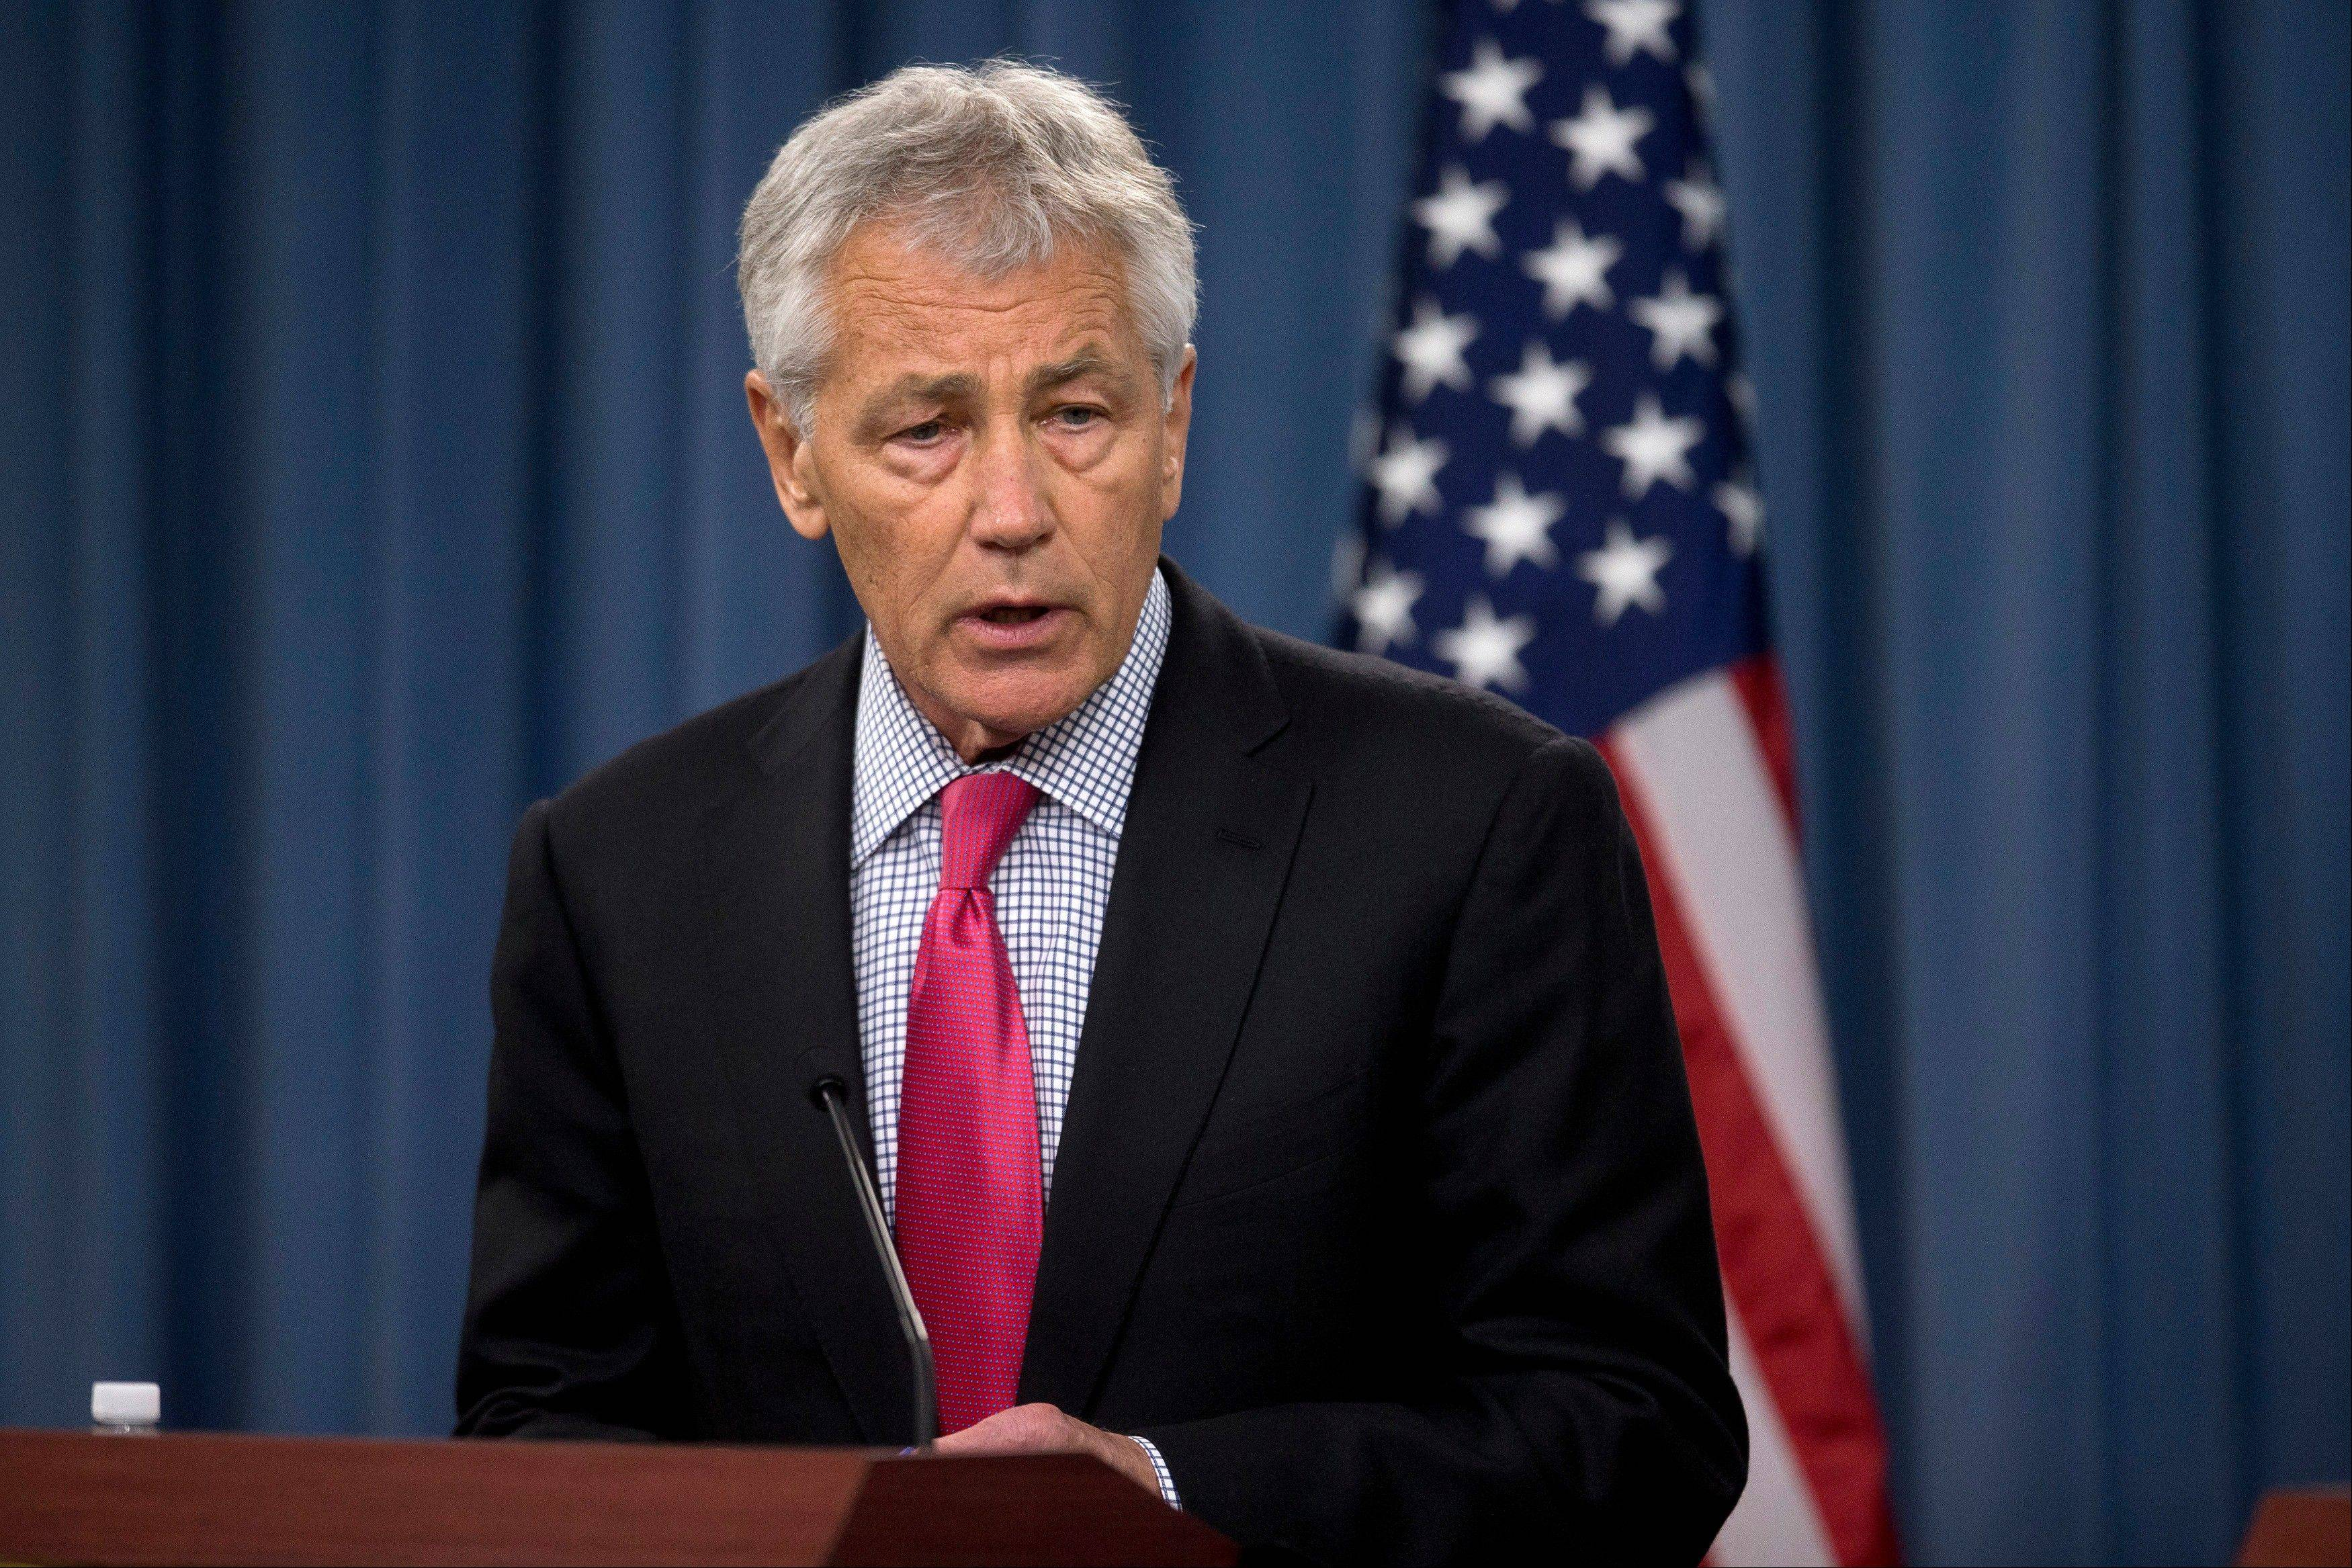 Defense Secretary Chuck Hagel said he was directing all the services to retrain, re-credential and rescreen all sexual assault prevention and response personnel and military recruiters, his spokesman, George Little, said after Tuesday�s announcement that a sergeant first class at Fort Hood, Texas, was accused of pandering, abusive sexual contact, assault and maltreatment of subordinates.